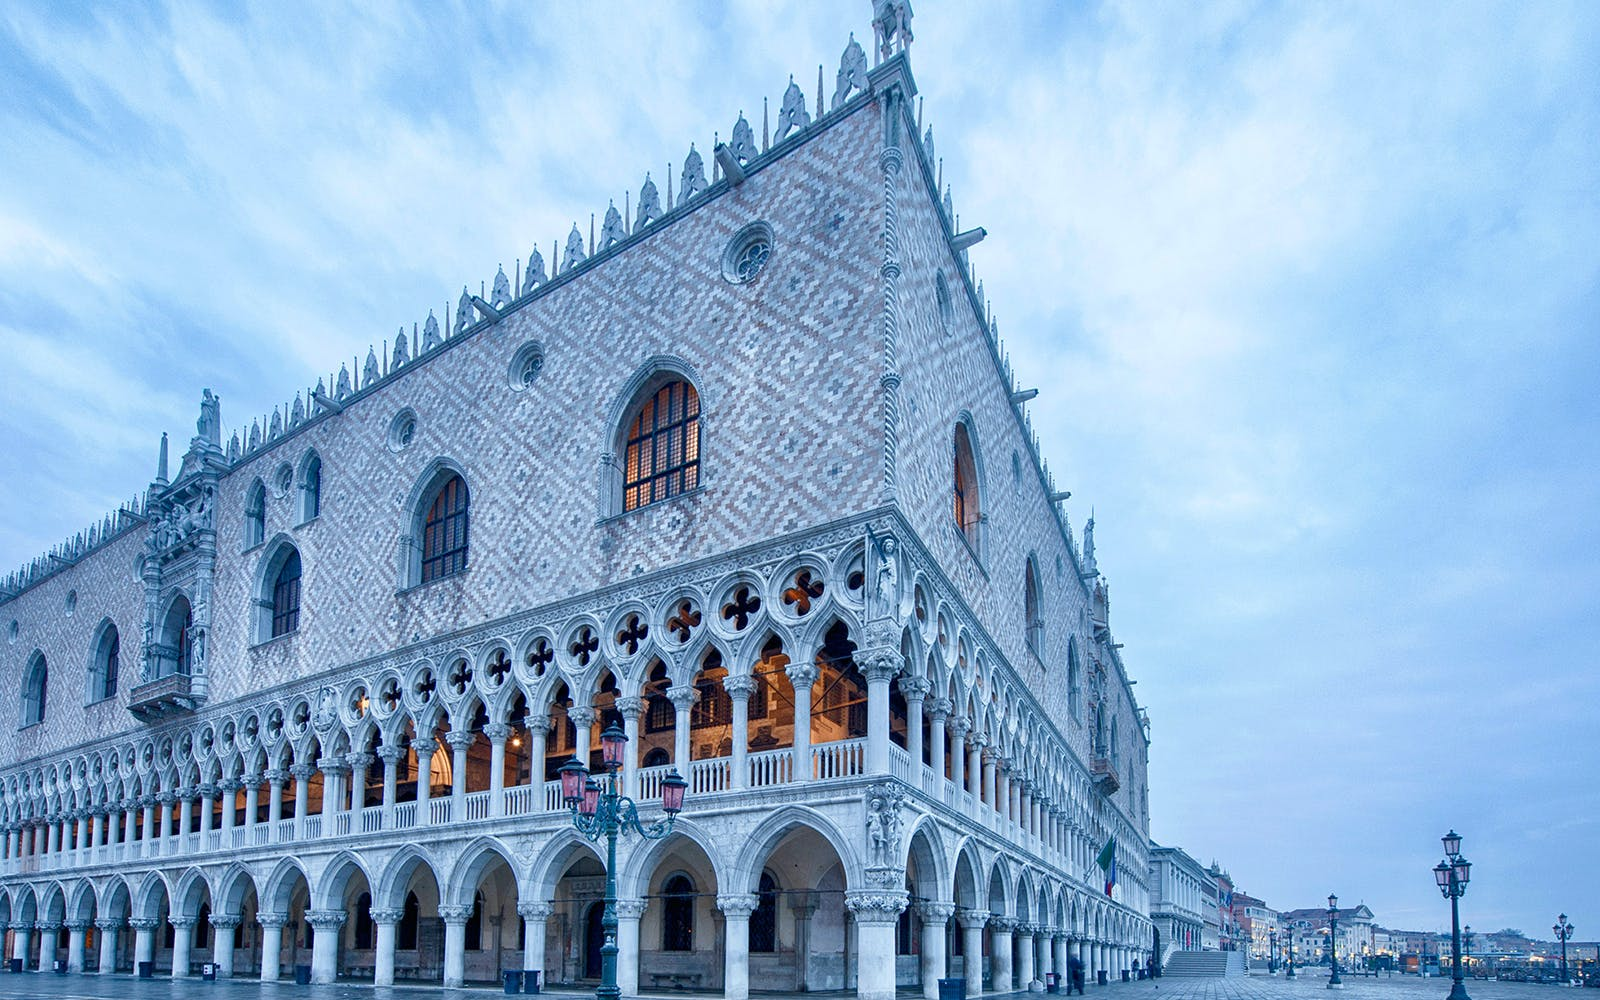 Guided Secrets Tour of Doge's Palace